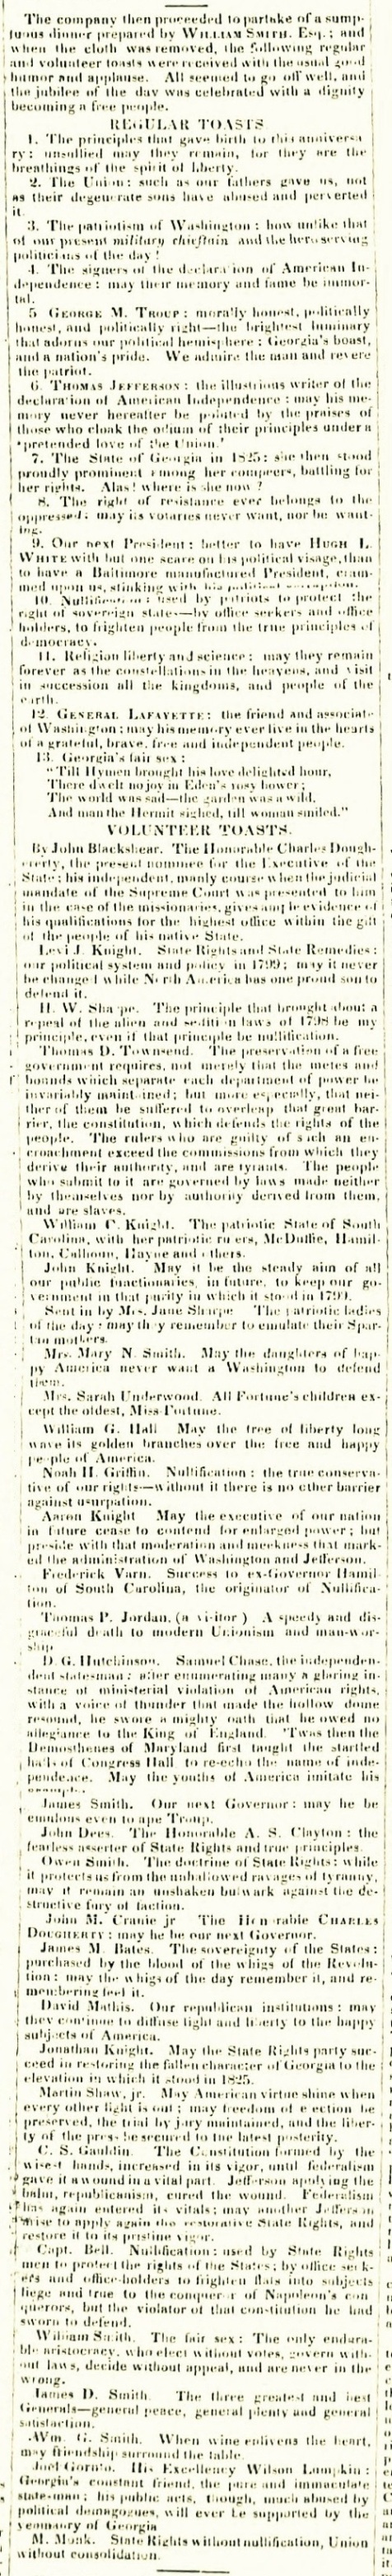 1835 Independence Day toasts at Franklinville, GA. The Southern Recorder, August 4, 1835.